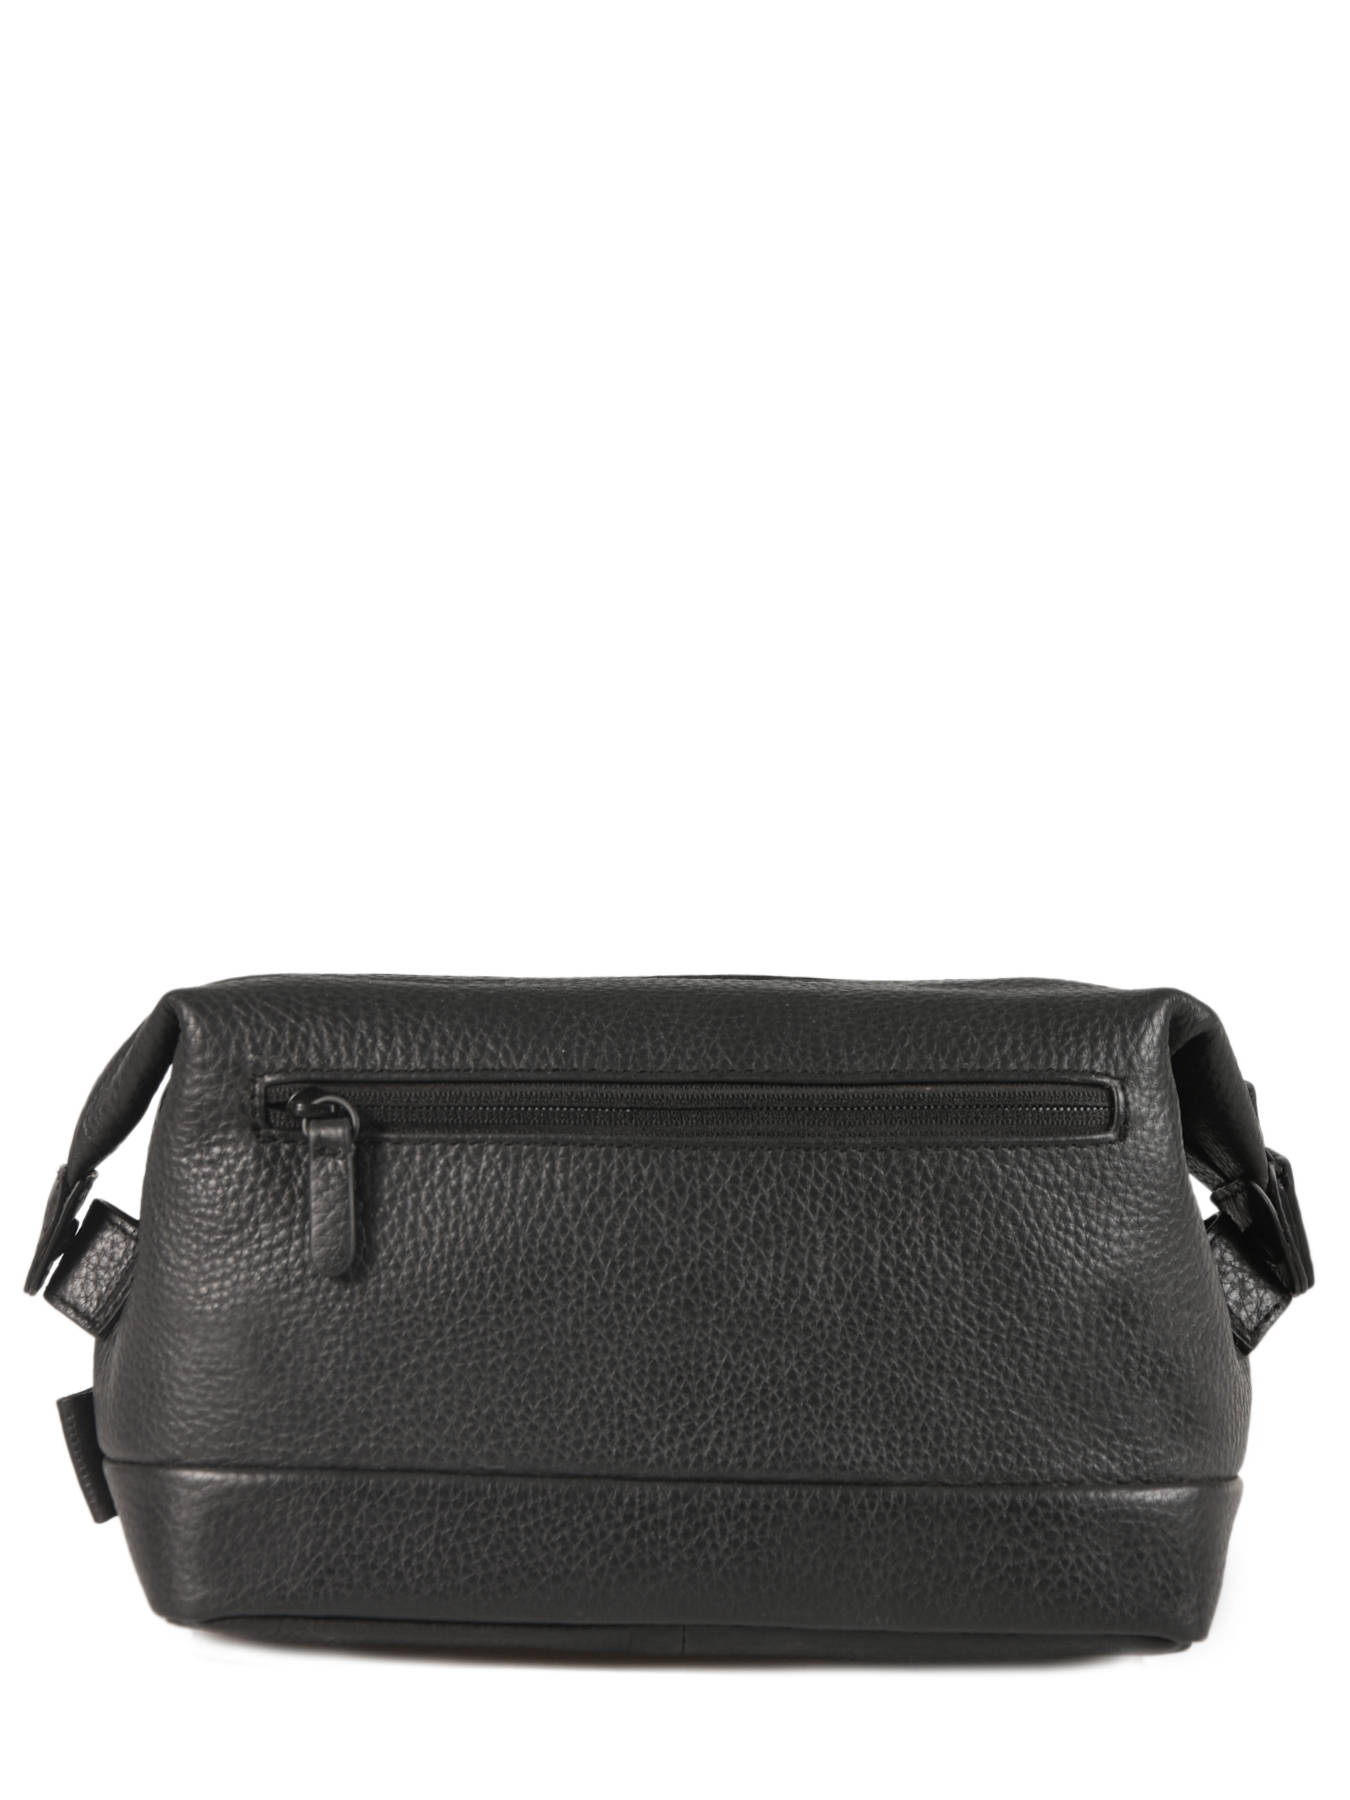 85709220d21 Toiletry Kit Jost Black stockholm 4573 other view 2 ...